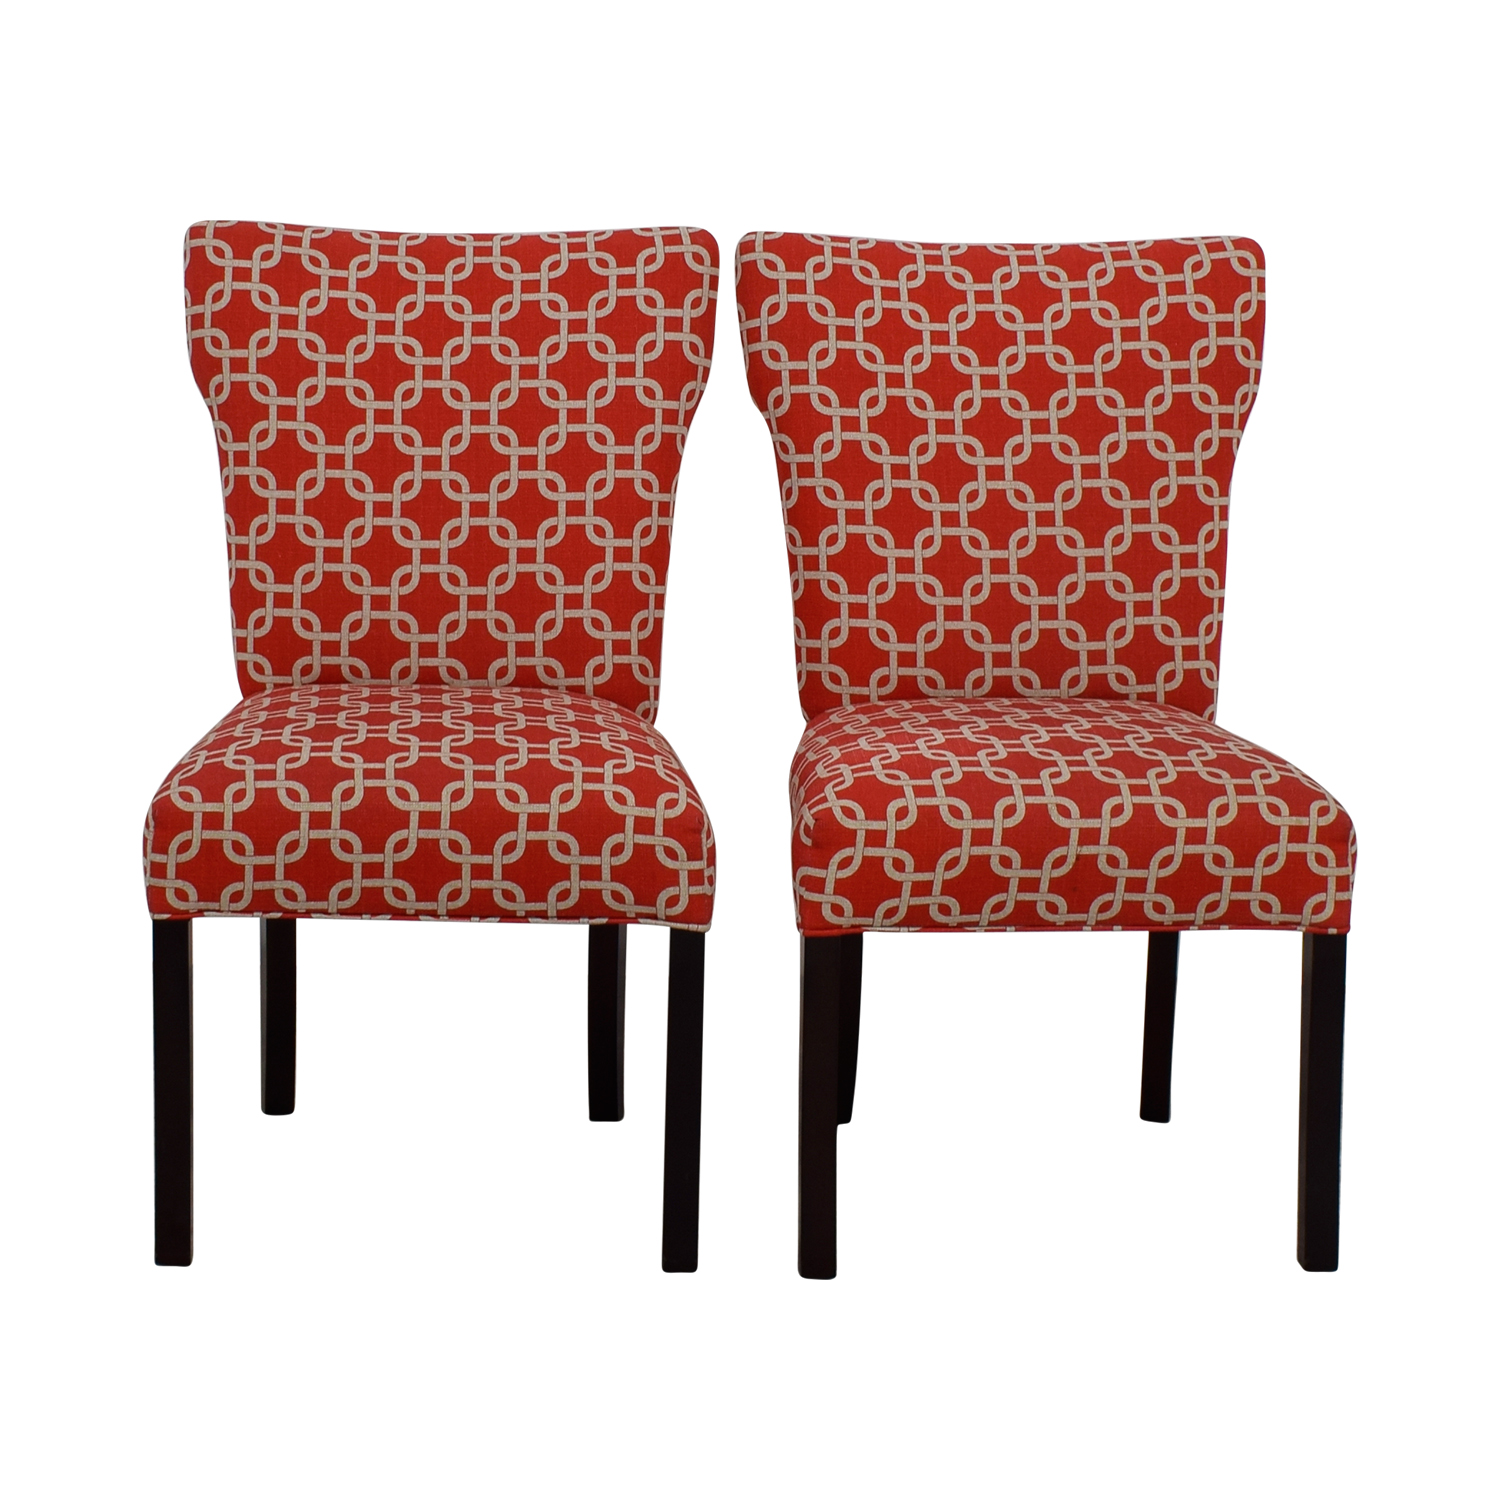 buy Red and White Accent Chairs